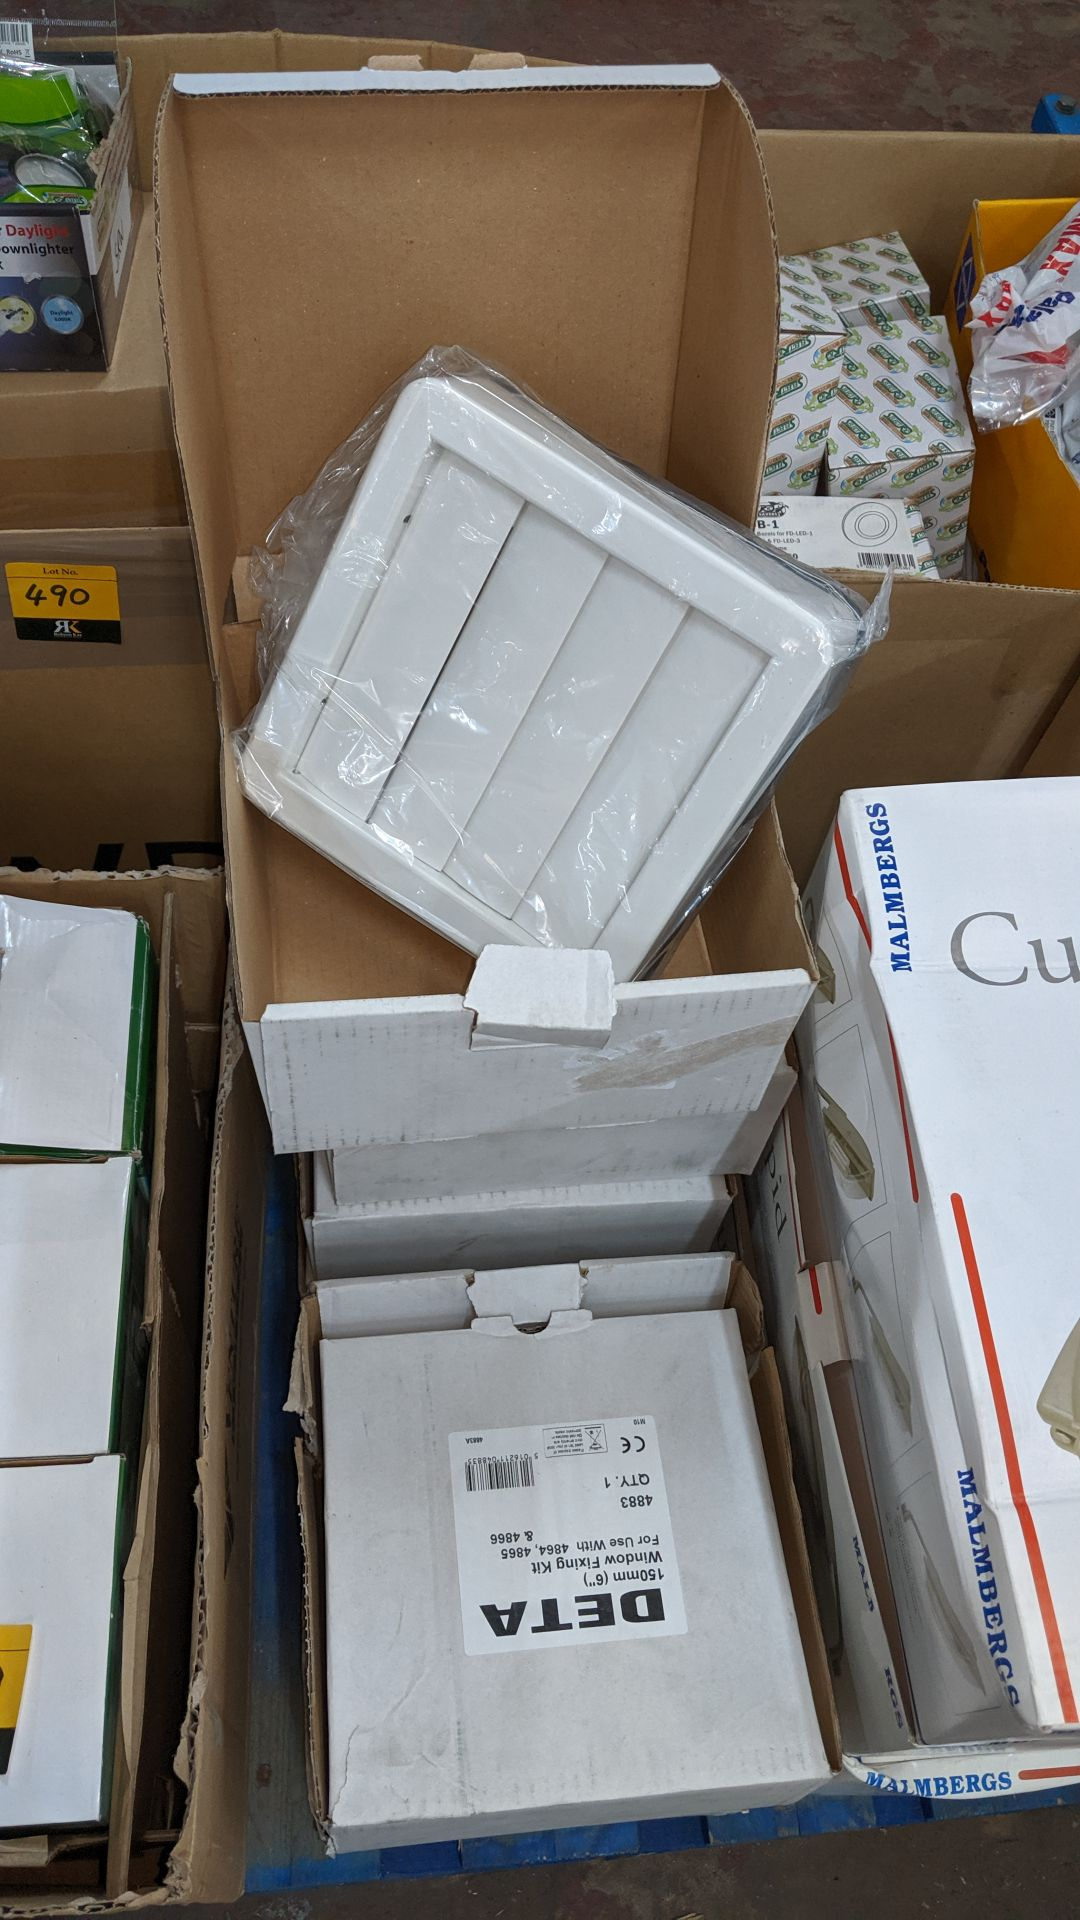 Lot 488 - 6 boxes of Deta 150mm window fixing kits. IMPORTANT: Please remember goods successfully bid upon